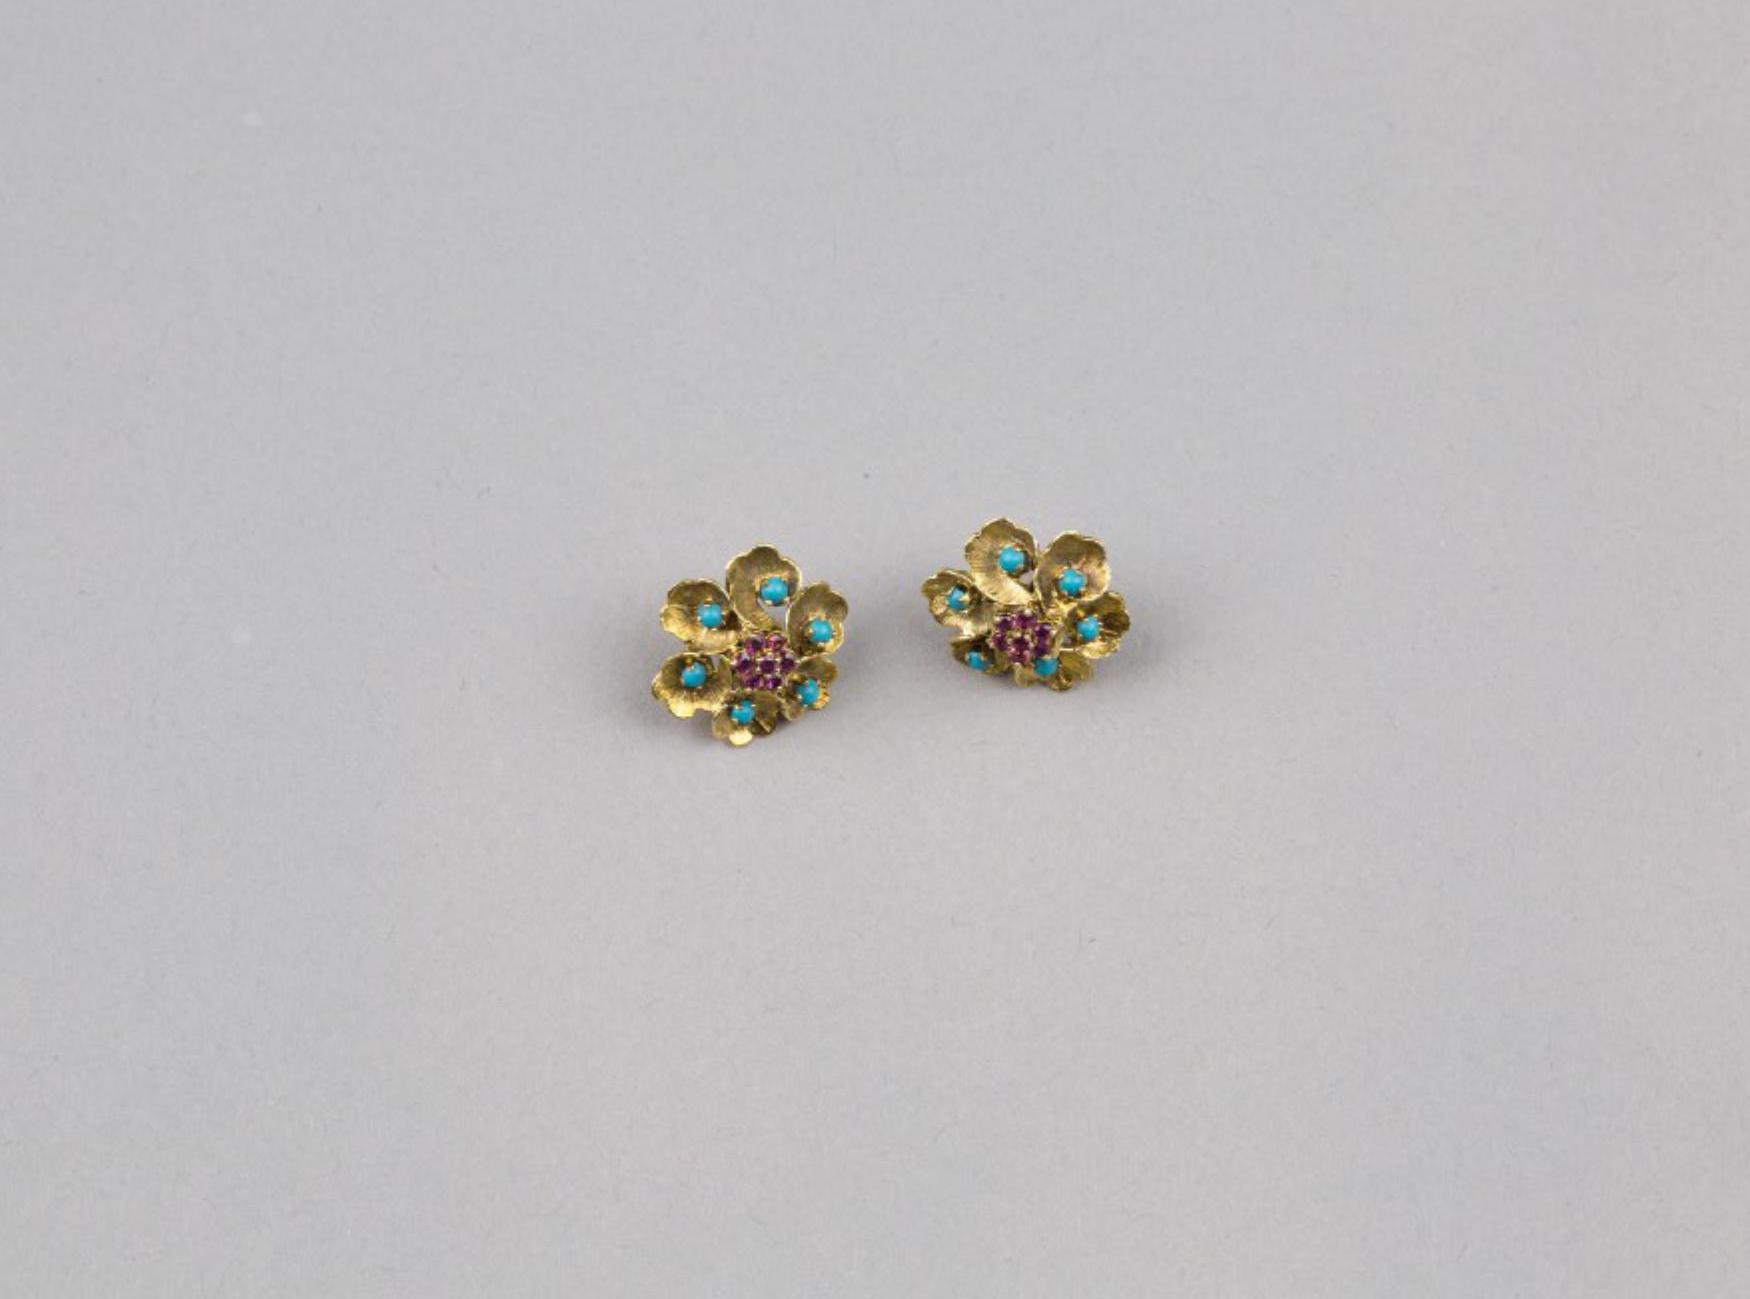 Lot 49 - A Pair of Ruby and Turquoise Earrings